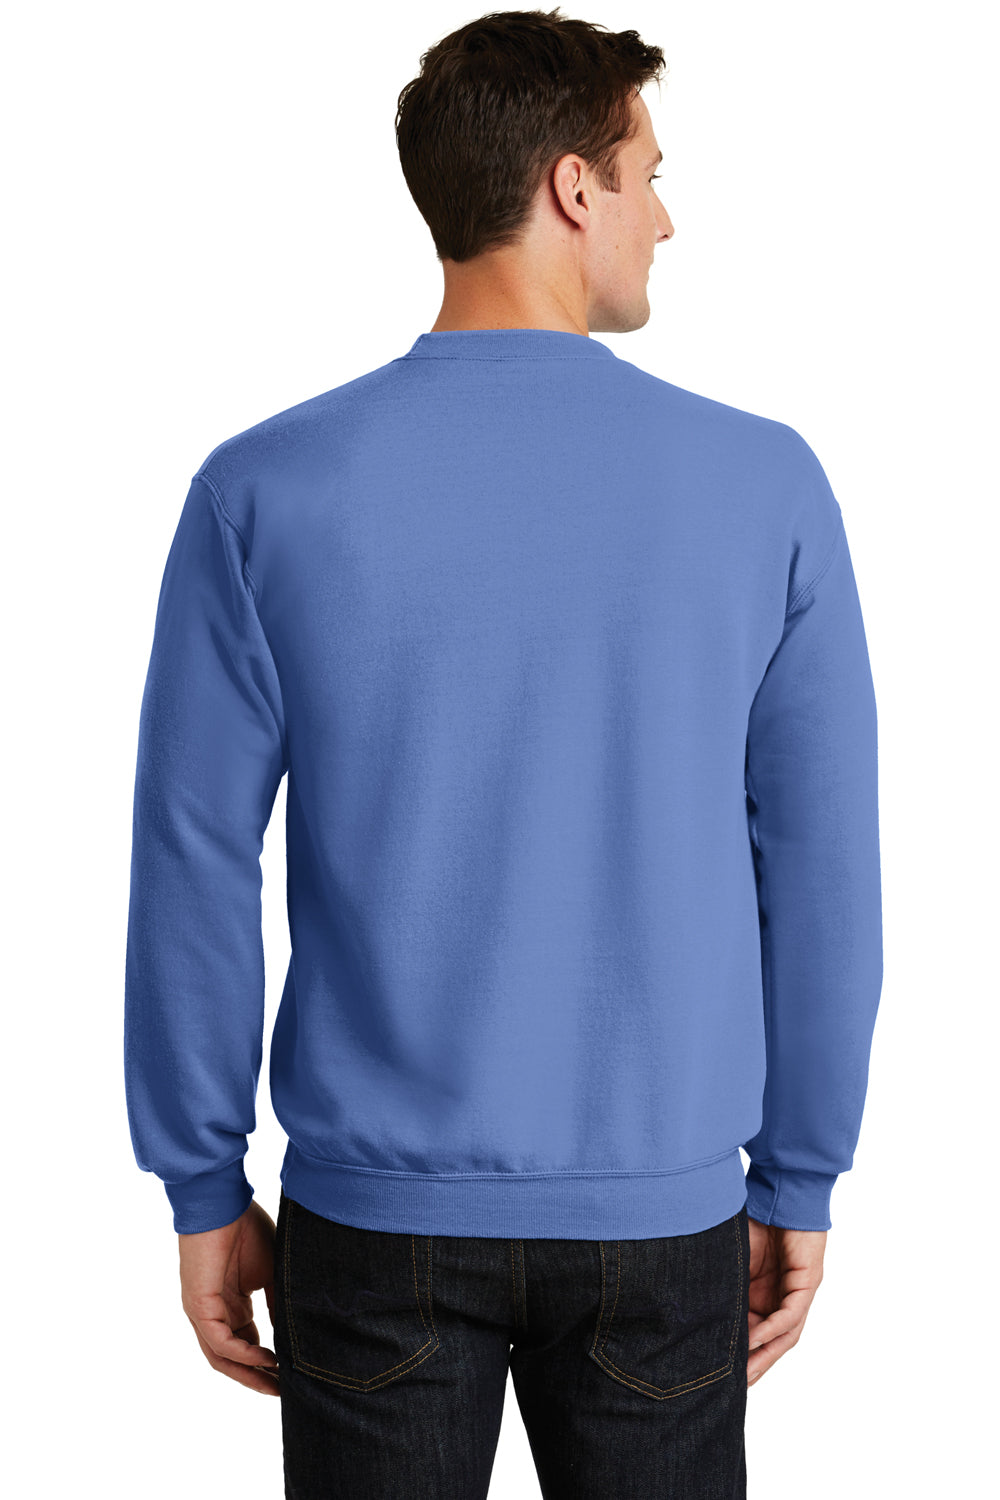 Port & Company PC78 Mens Core Fleece Crewneck Sweatshirt Carolina Blue Back